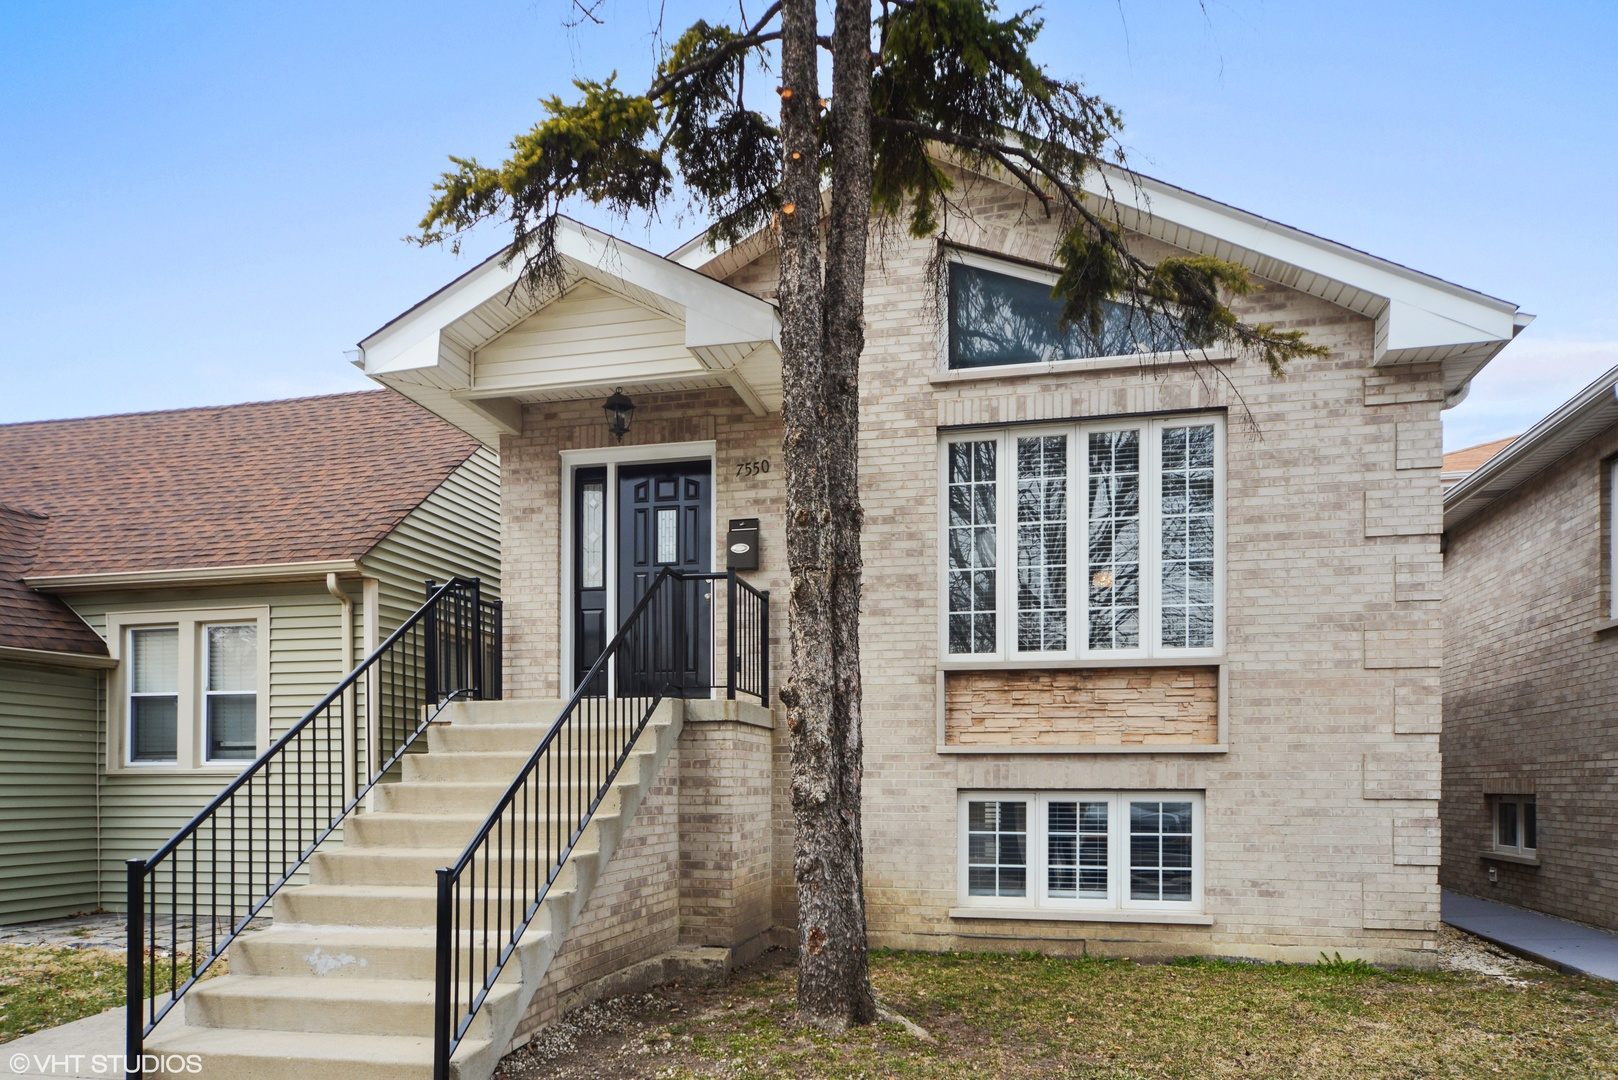 7550 W. Forest Preserve